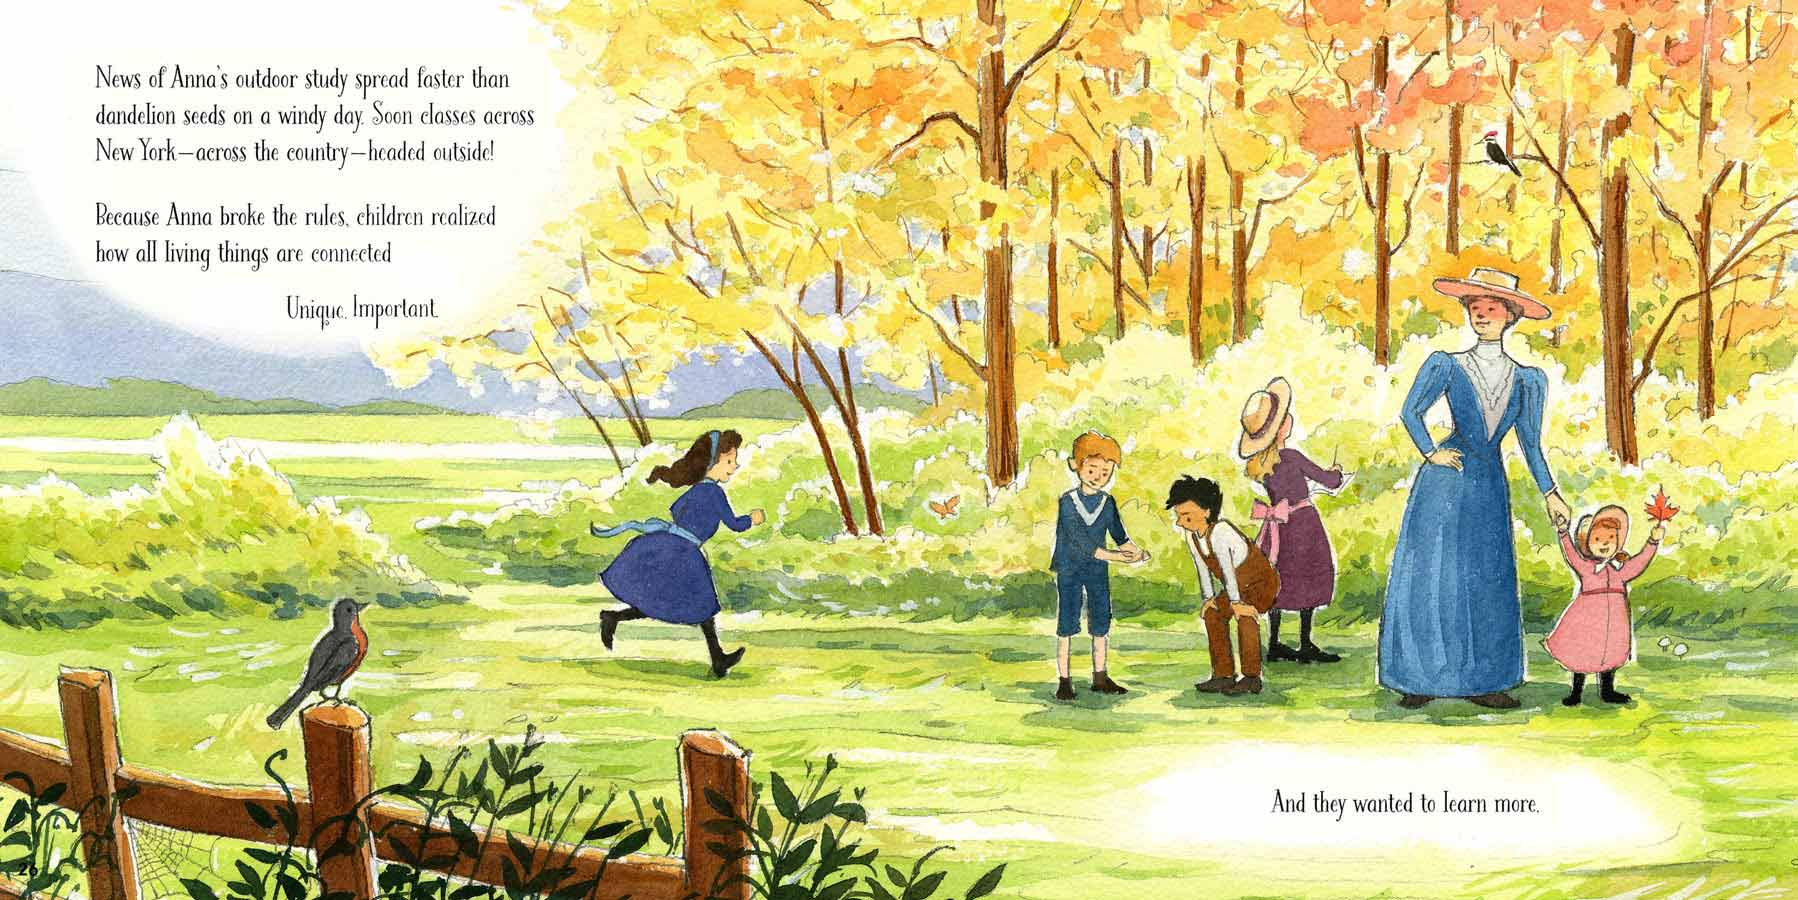 Watercolor illustration from 'Out of School and Into Nature' of a group of children and Anna Comstock looking at nature in a sunny field in autumn.